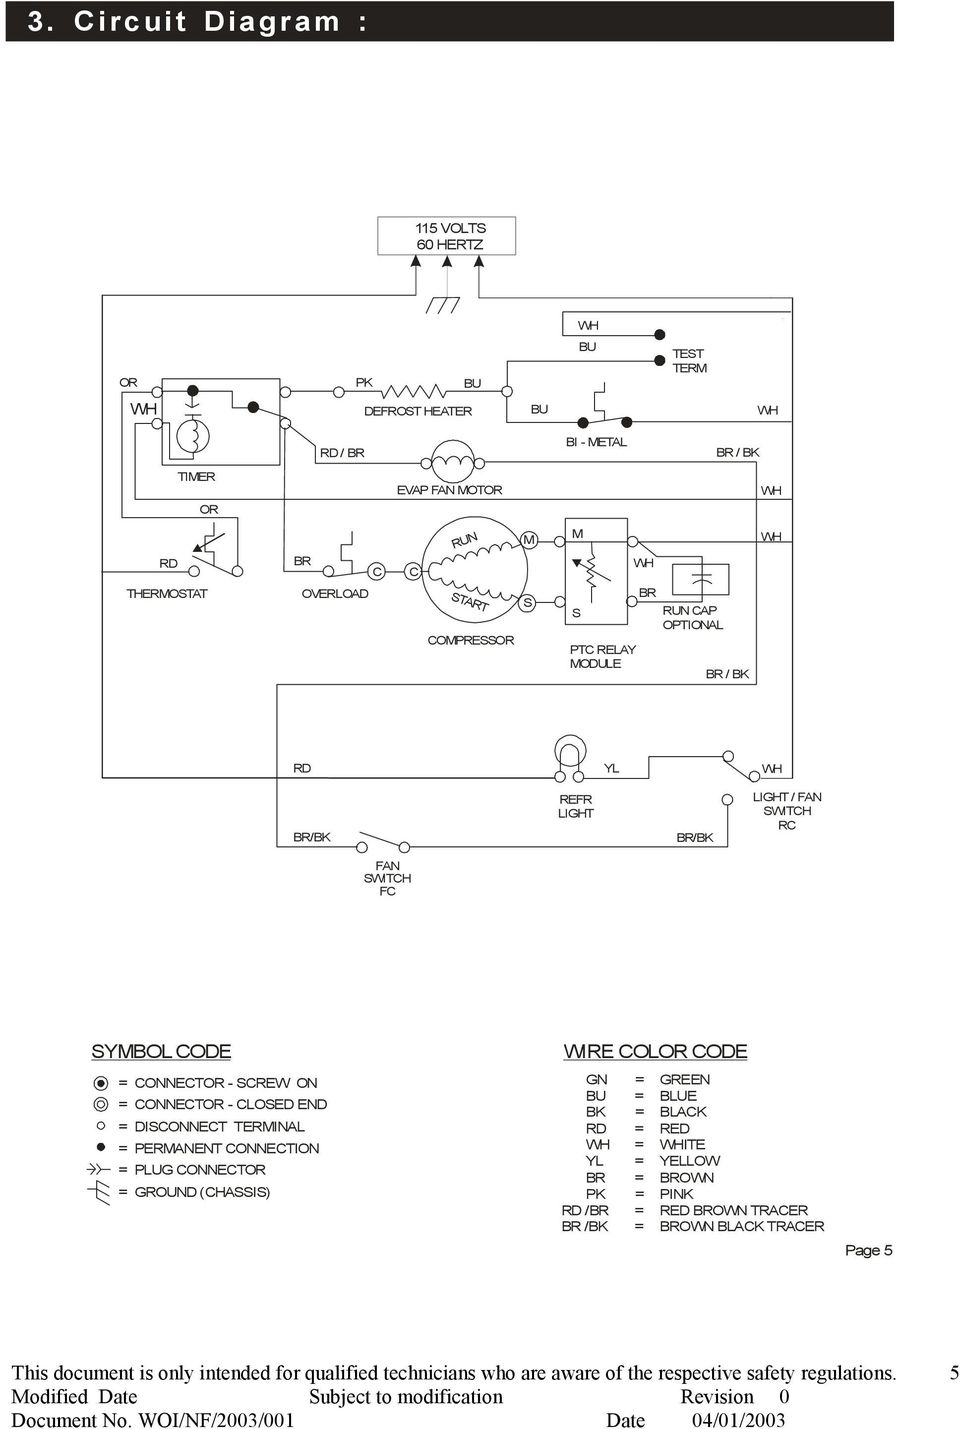 Service And Parts Manual Global No Frost Double Door Refrigerator Wiring Diagram Whirlpool Wtw5200vq2 Switch Rc Fan Fc Symbol Code Connector Screw On Closed